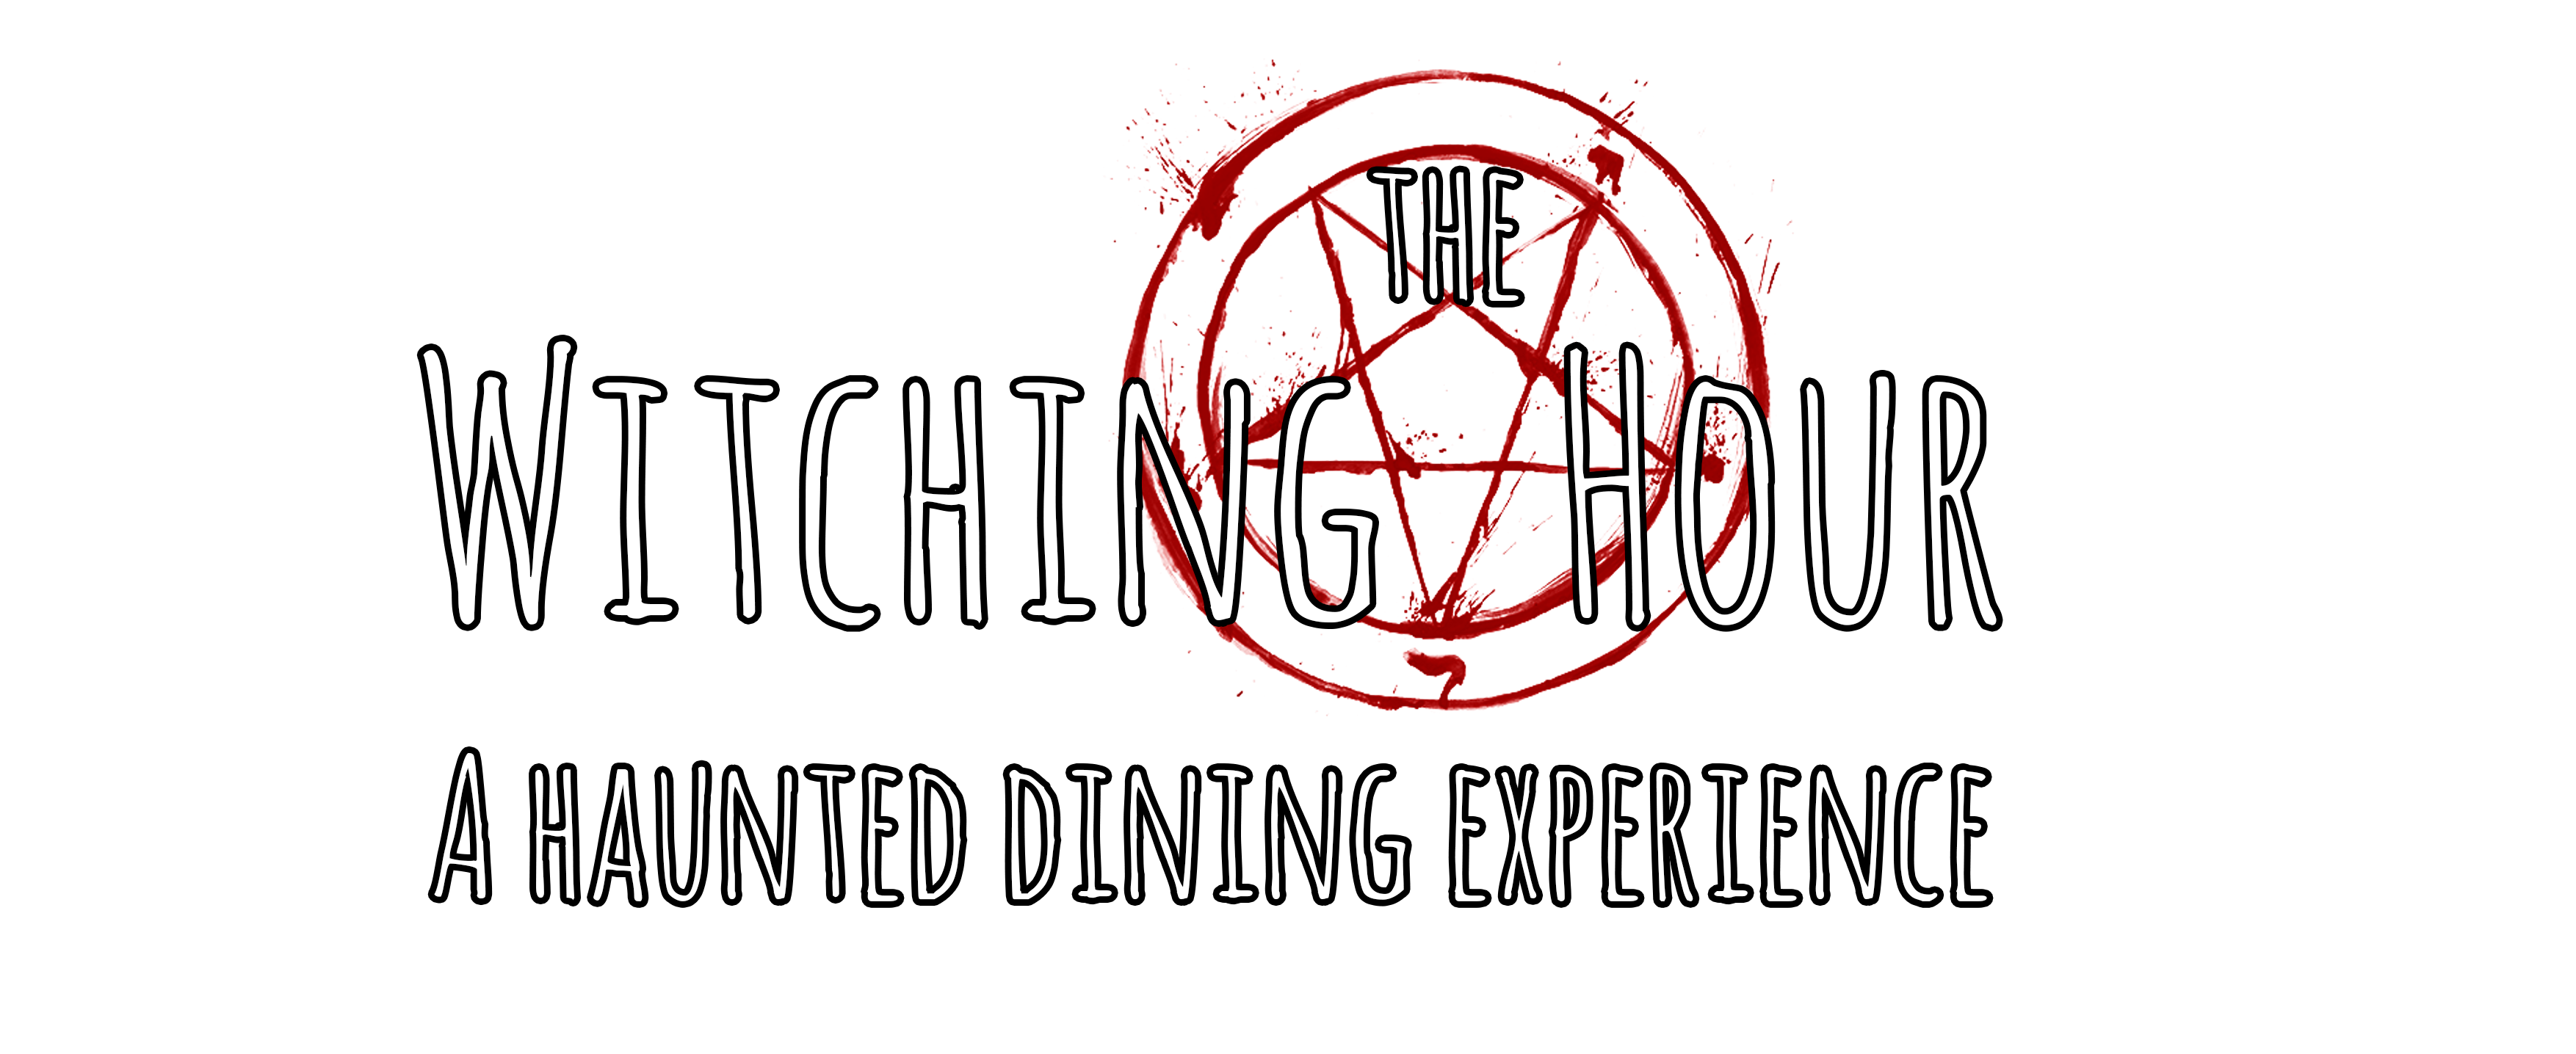 Witching Hour Events